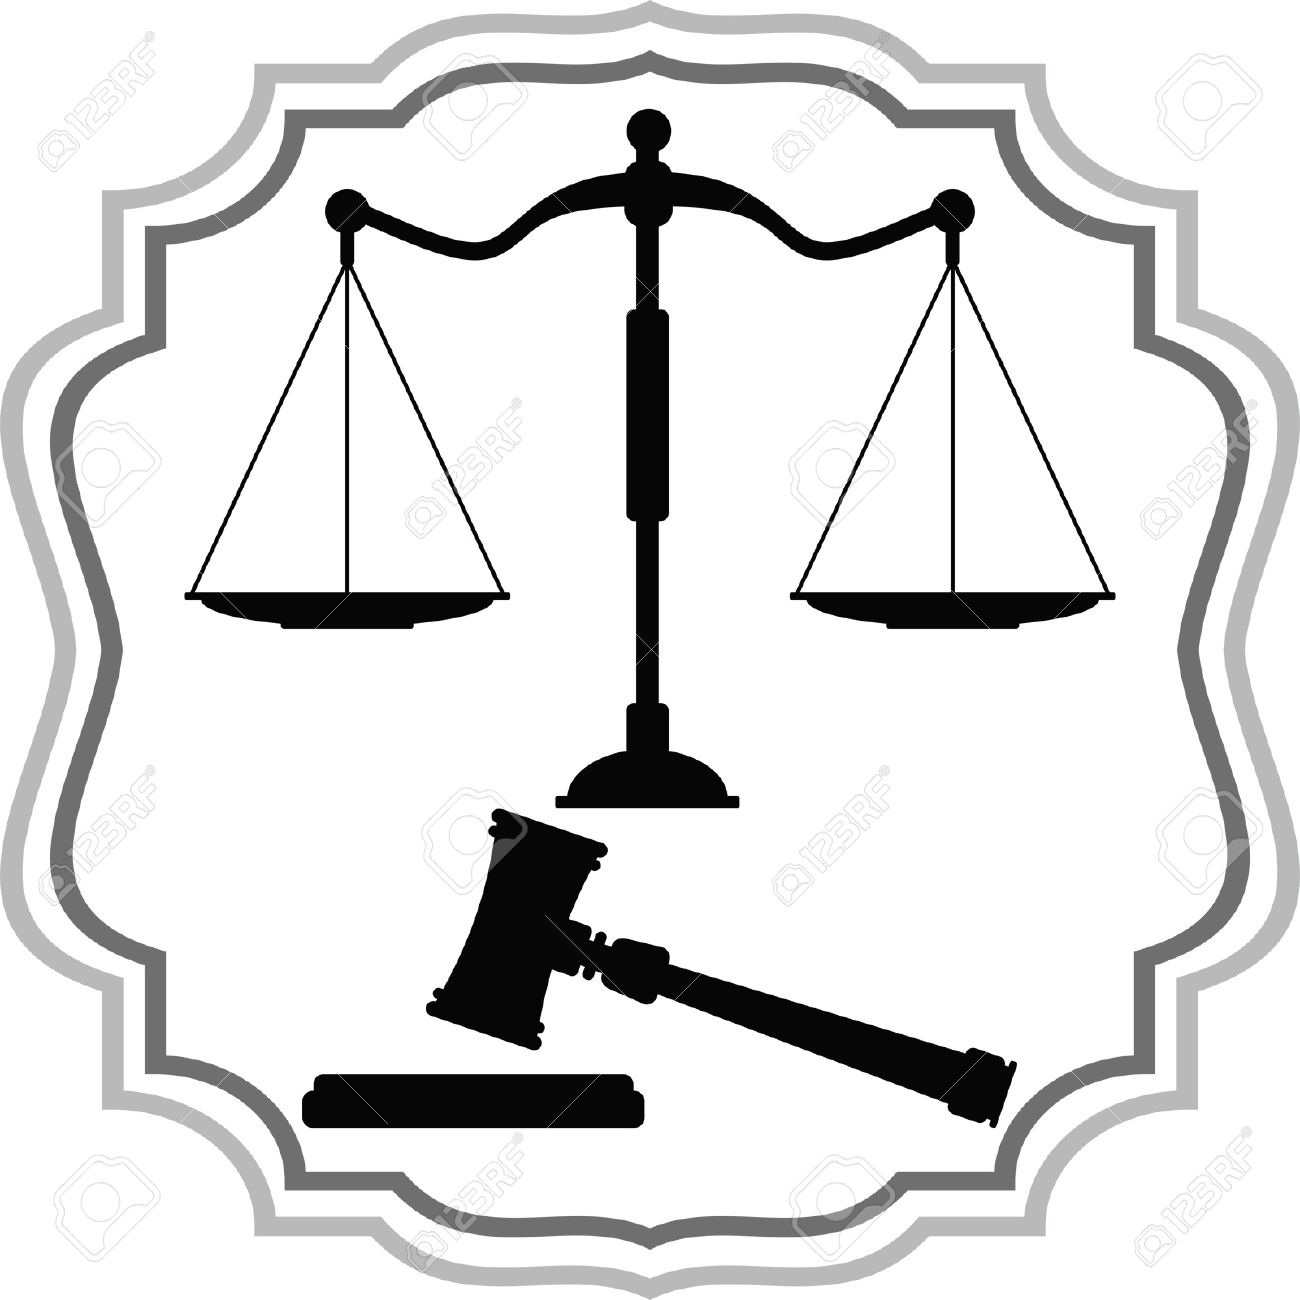 Symbols Of Justice Scales And Hammer